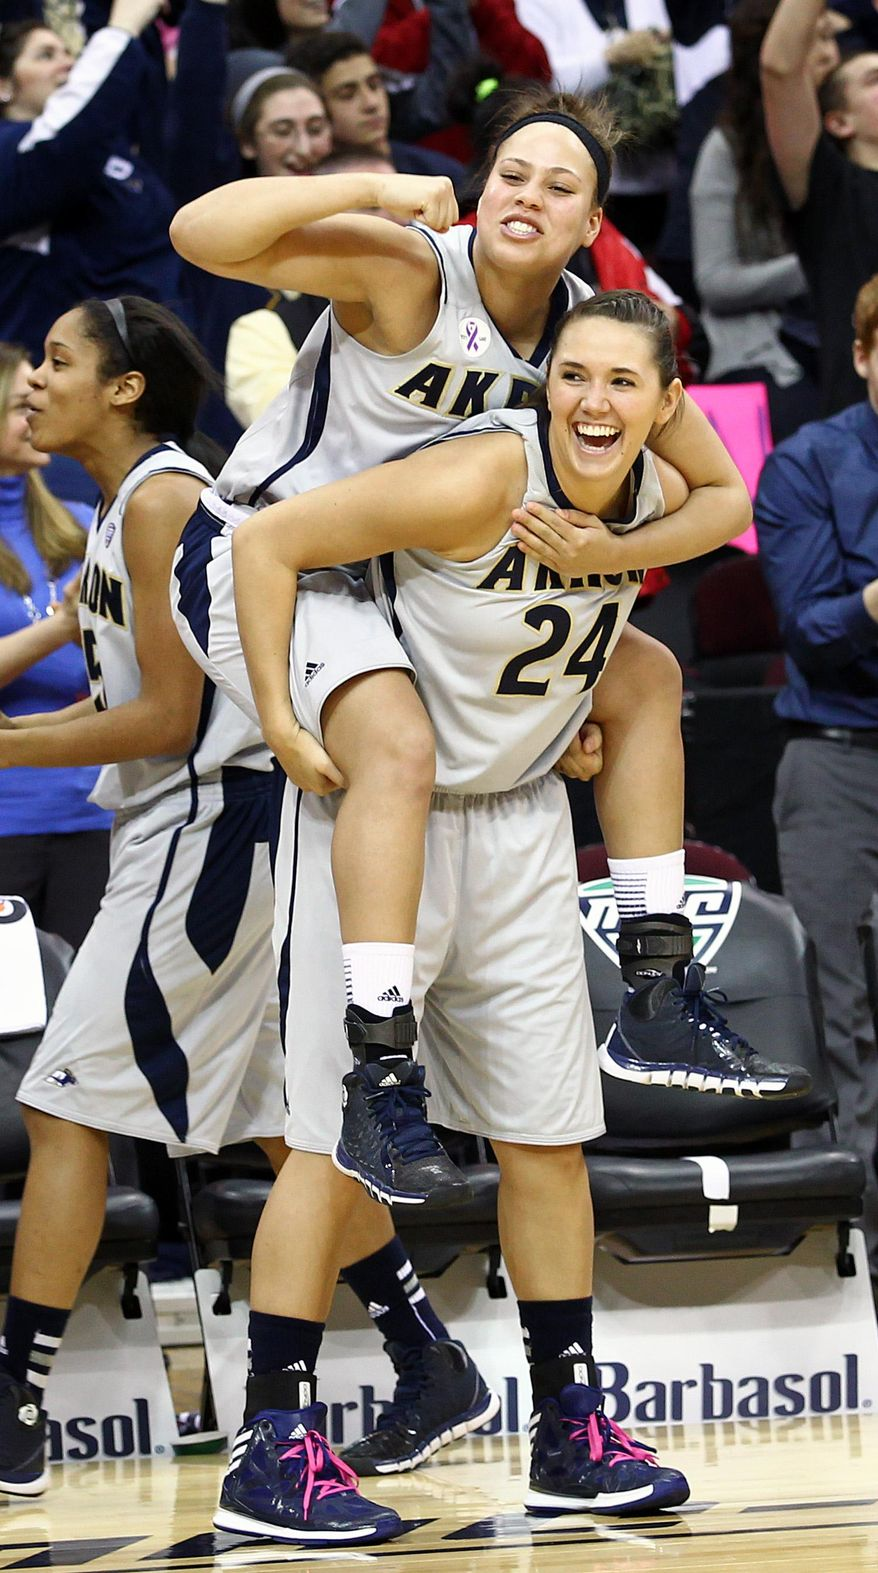 Akron's DiAndra Gibson, top, celebrates with teammate Katie Nunan after the Zips defeated Ball State 79-68 in an NCAA college basketball game in the championship of the Mid-American Conference tournament Saturday, March 15, 2014 in Cleveland. (AP Photo/Aaron Josefczyk)